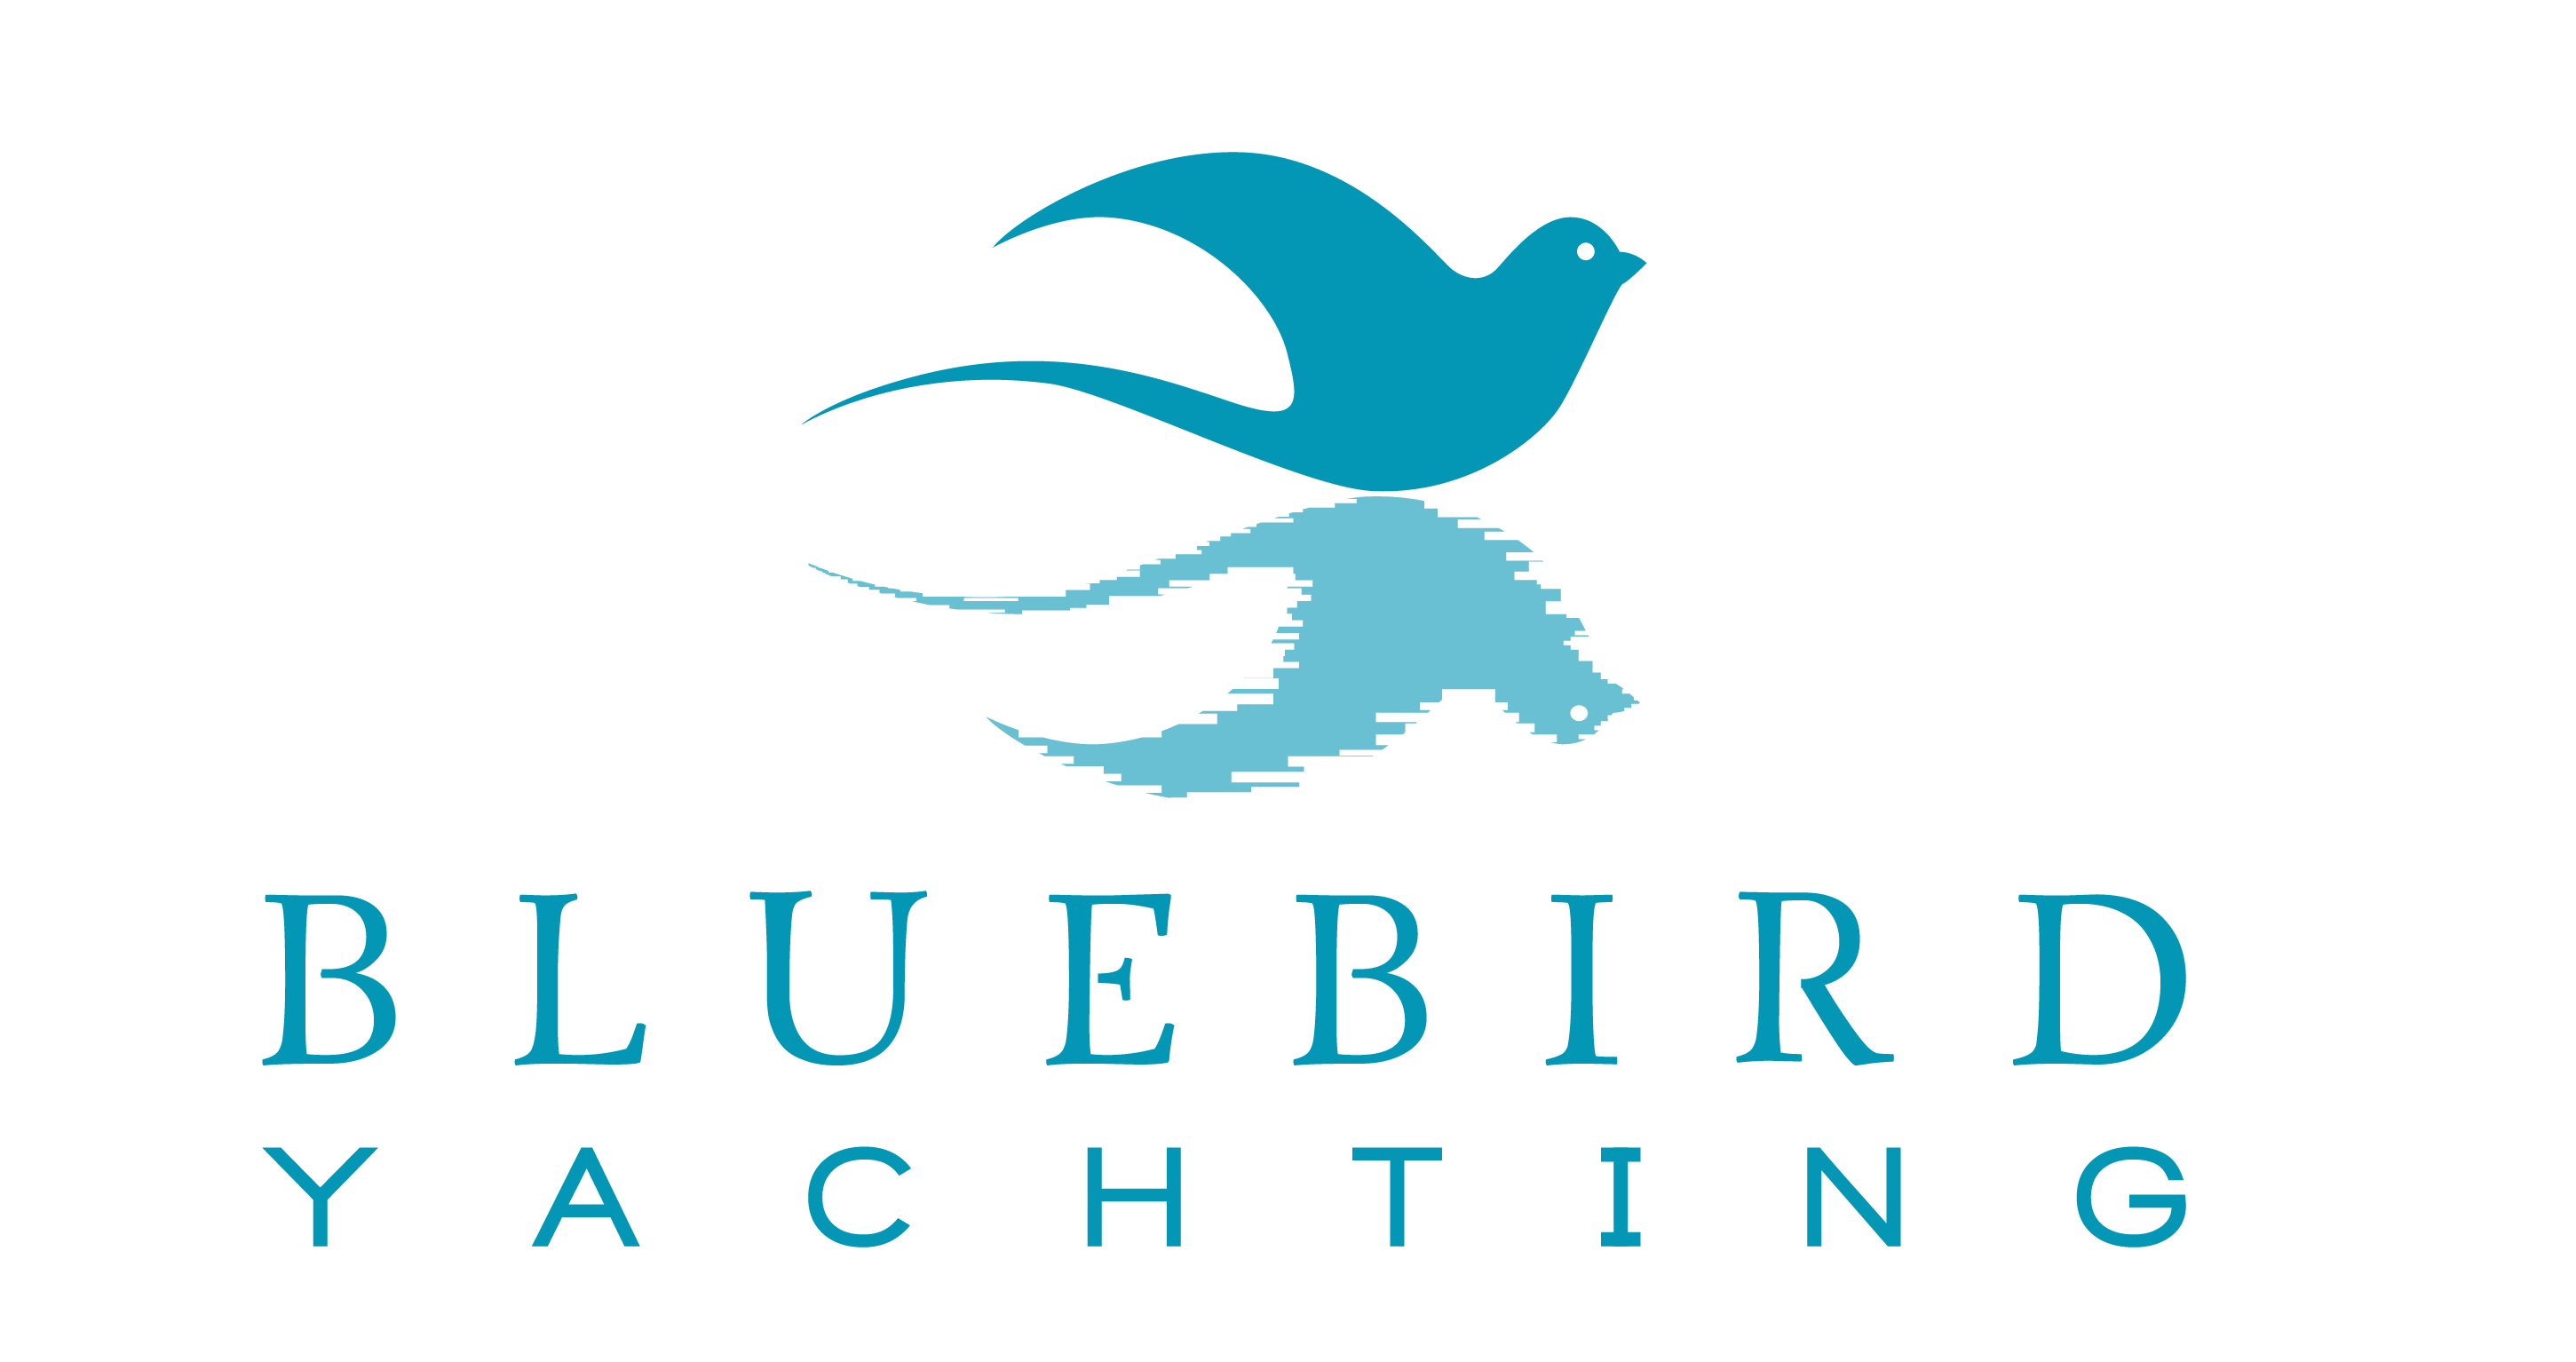 Bluebird Yachting | Ionian Islands | Bluebird Yachting